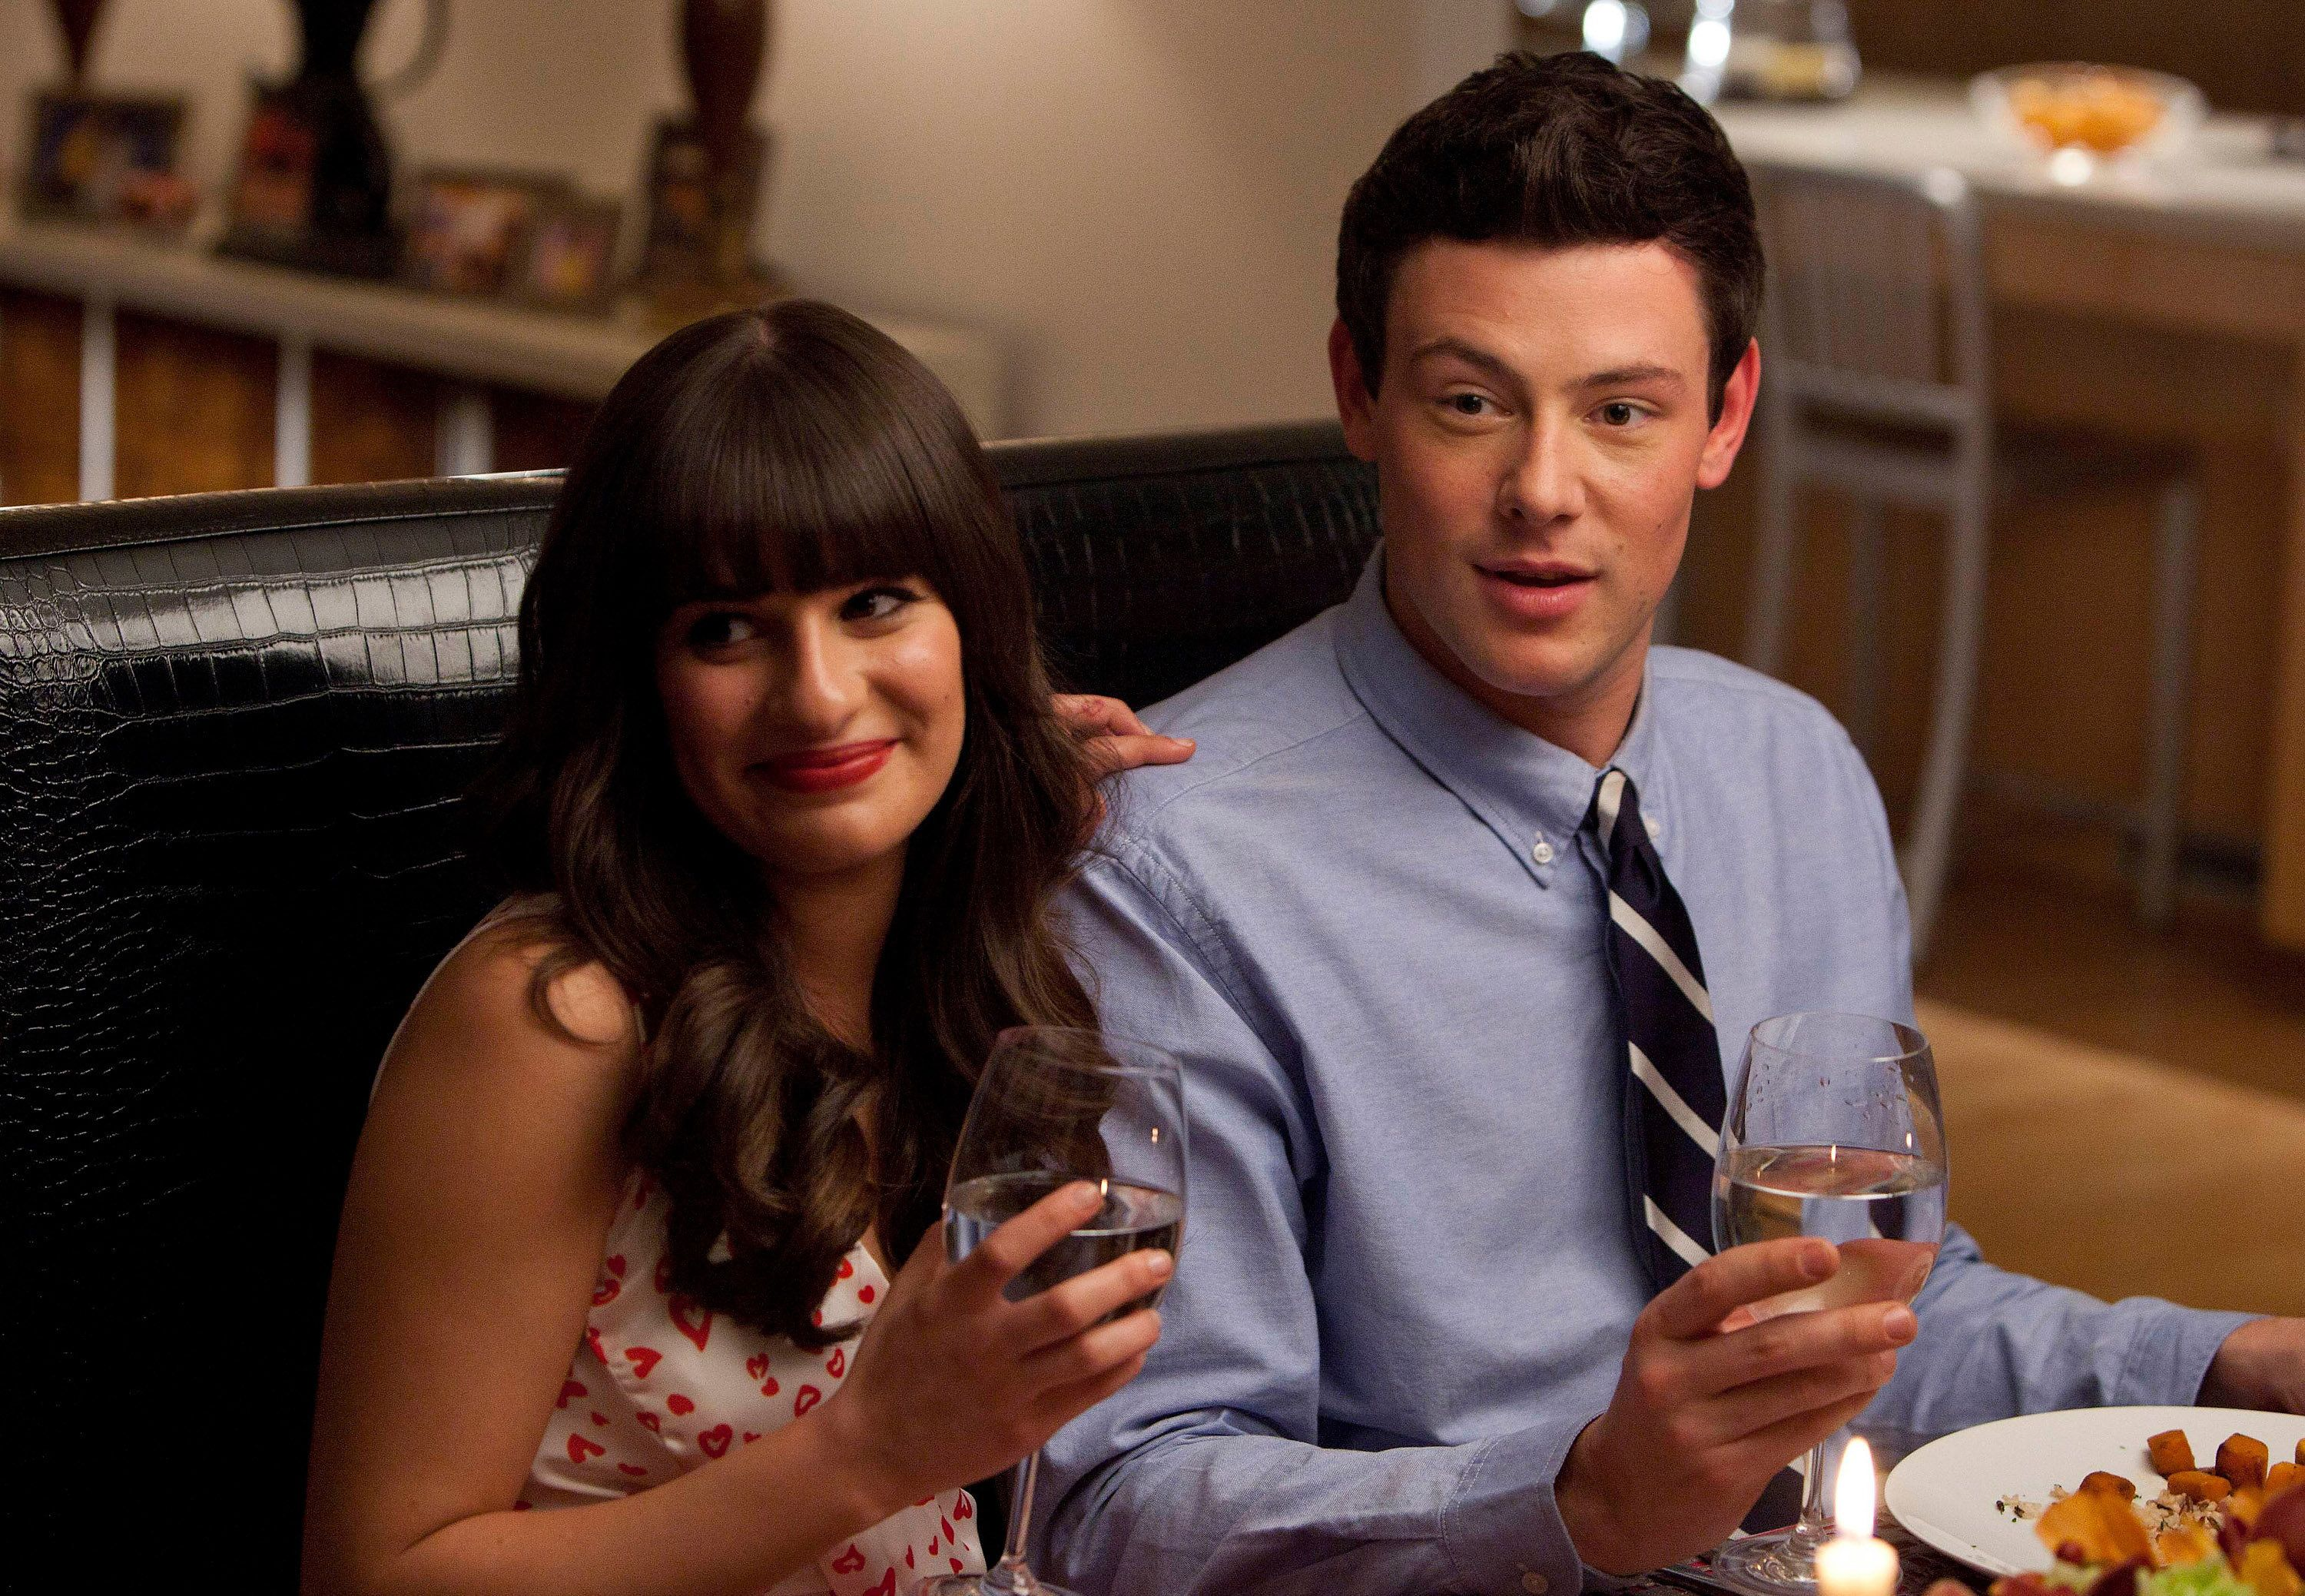 GLEE: Rachel (Lea Michele, L) and Finn (Cory Monteith, R) have dinner with her dads in the 'Heart' episode of GLEE airing Tuesday, Feb. 14 (8:00-9:00 PM ET/PT) on FOX. (Photo by FOX via Getty Images)